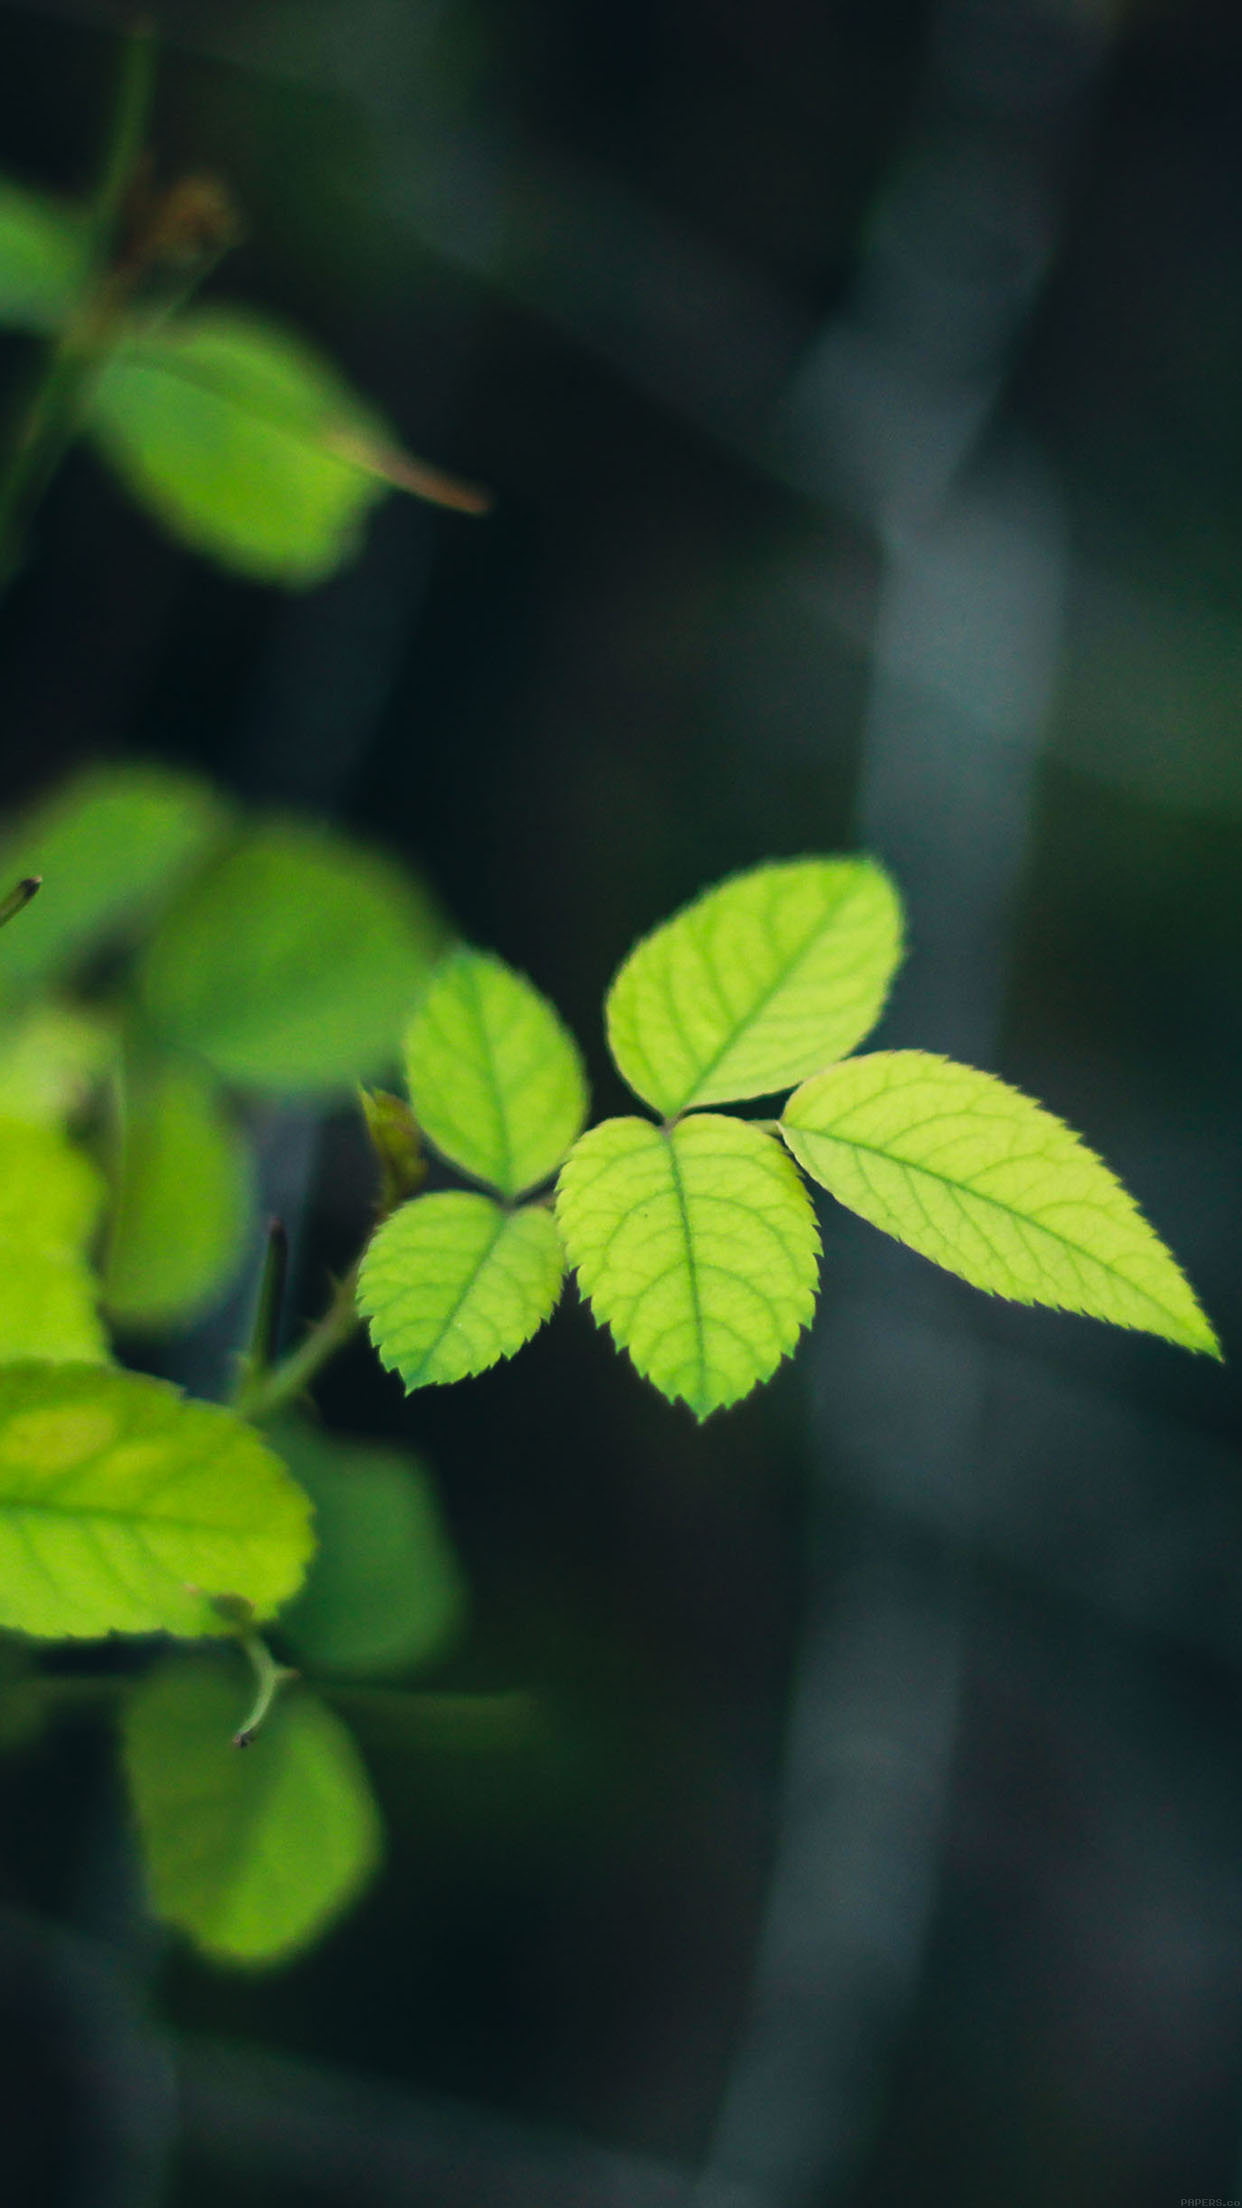 Cute Hd Wallpapers For Phone Mc00 Wallpaper Greenish Flower Leaf Papers Co